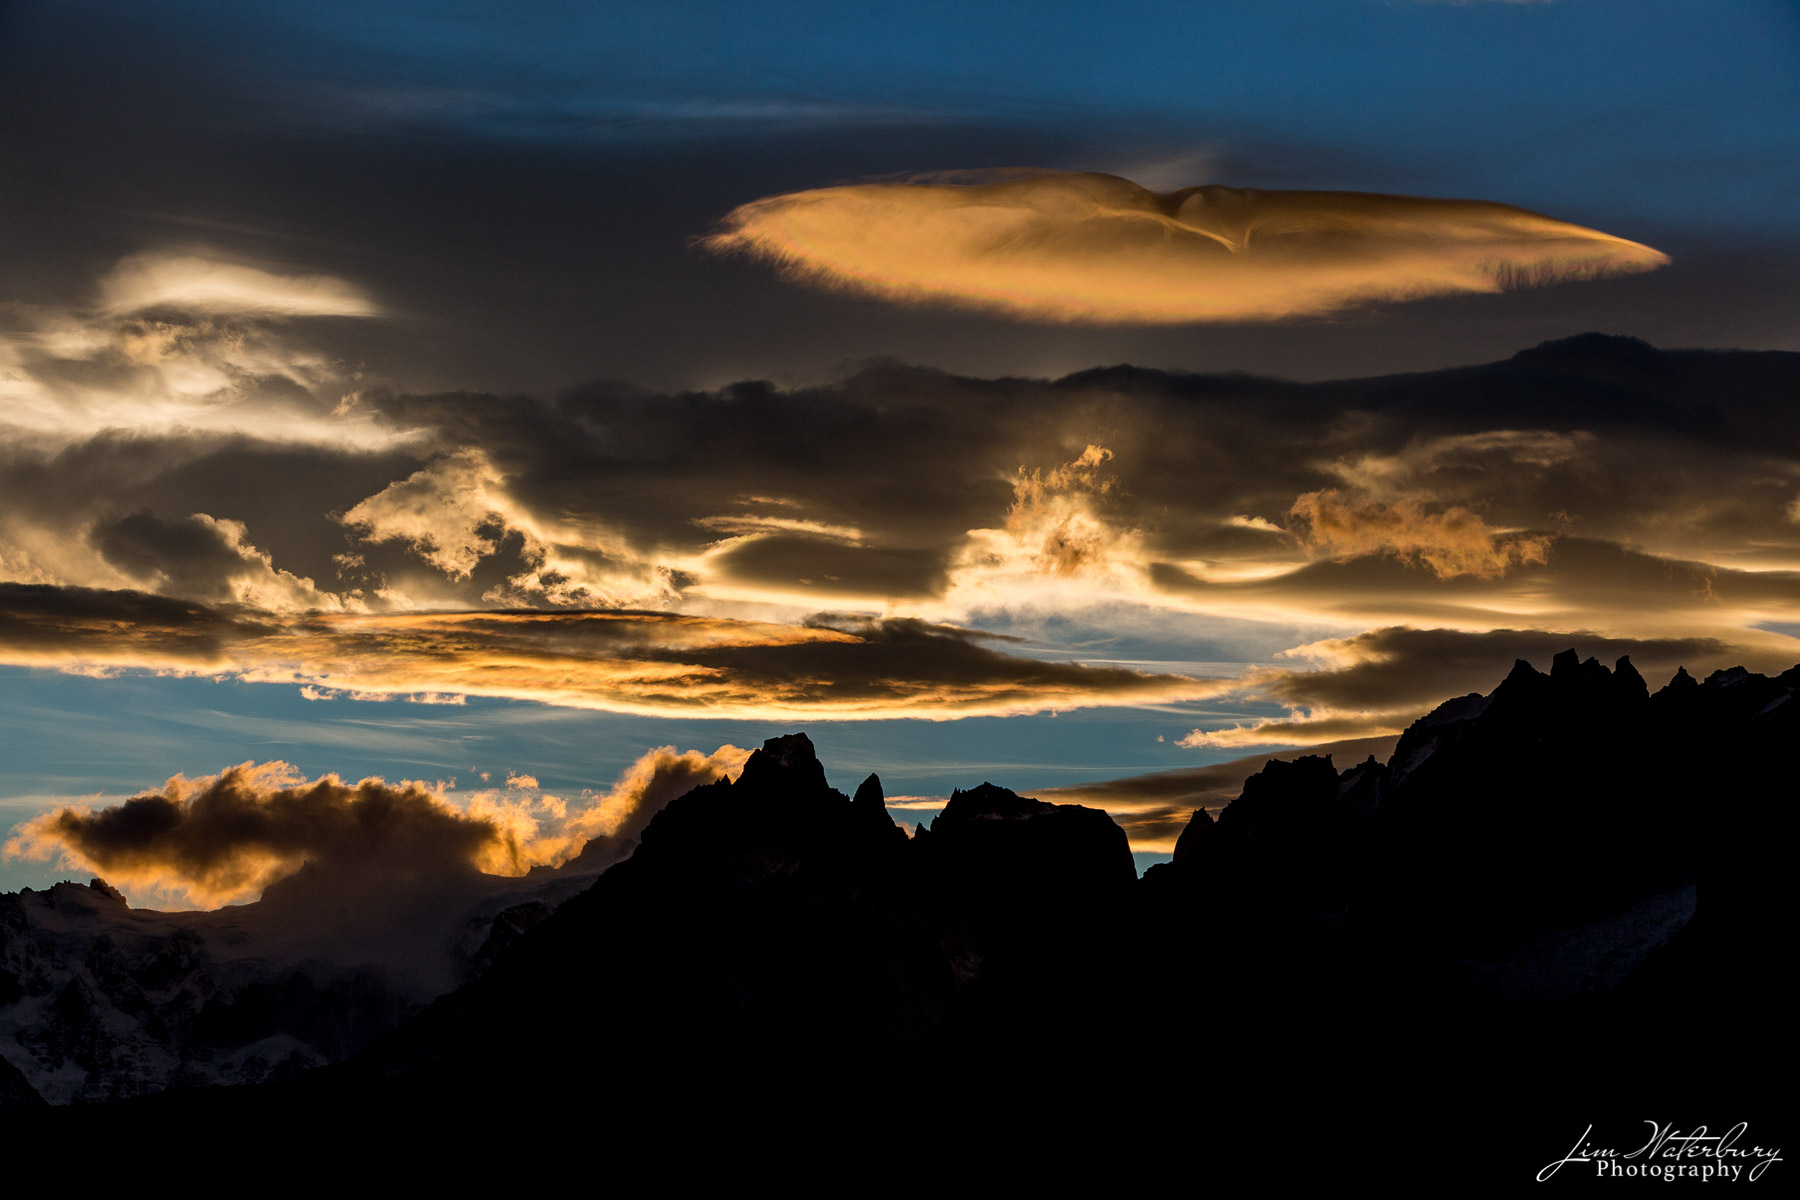 lenticular clouds, sky, mountains, Torres del Paine, Patagonia, photo